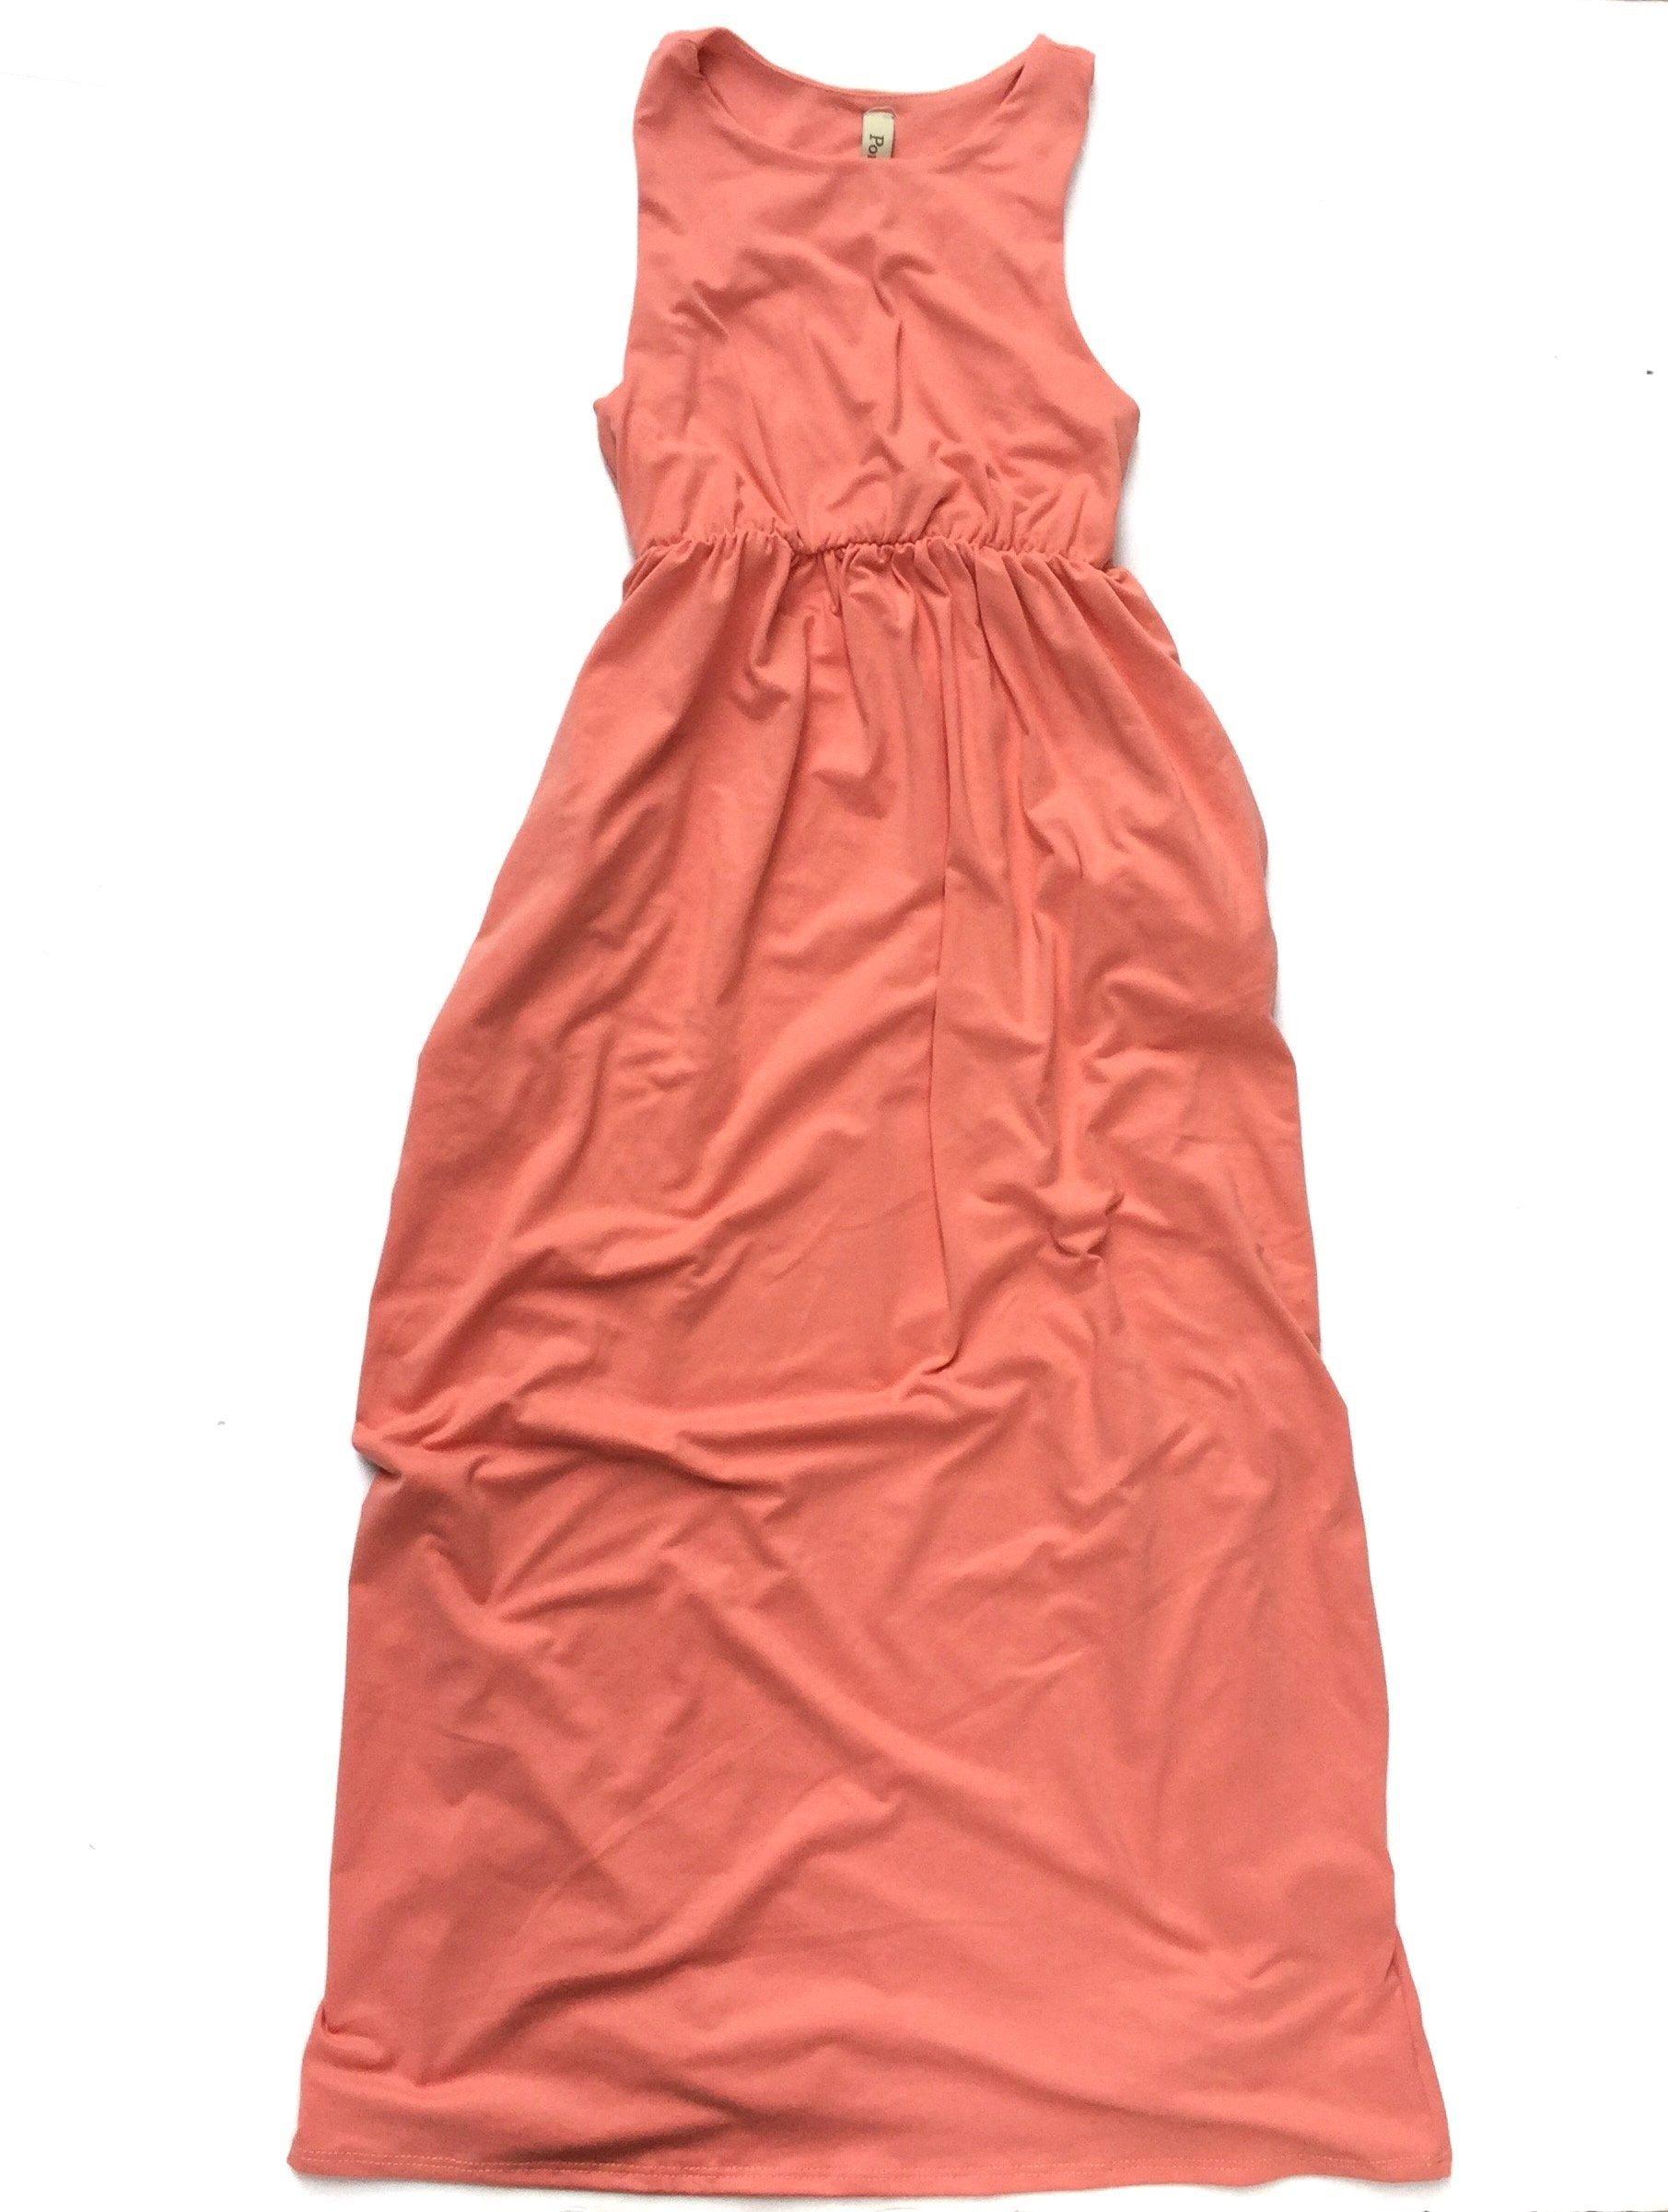 Childrens sleeveless coral maxi dress light color pastel dresses for kids